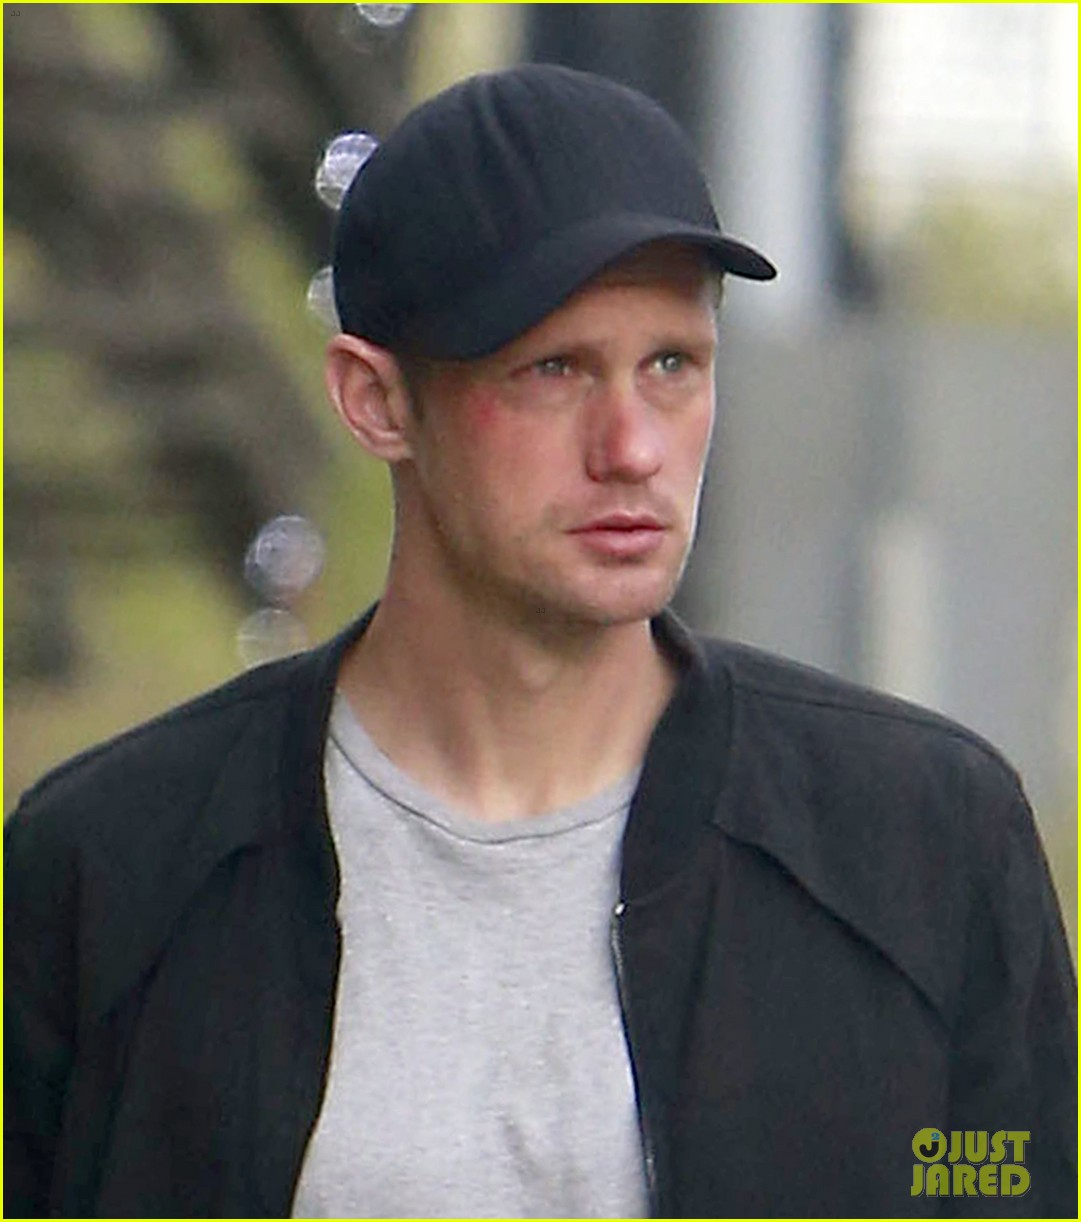 alexander skarsgard bruised eye in los angeles 022826970